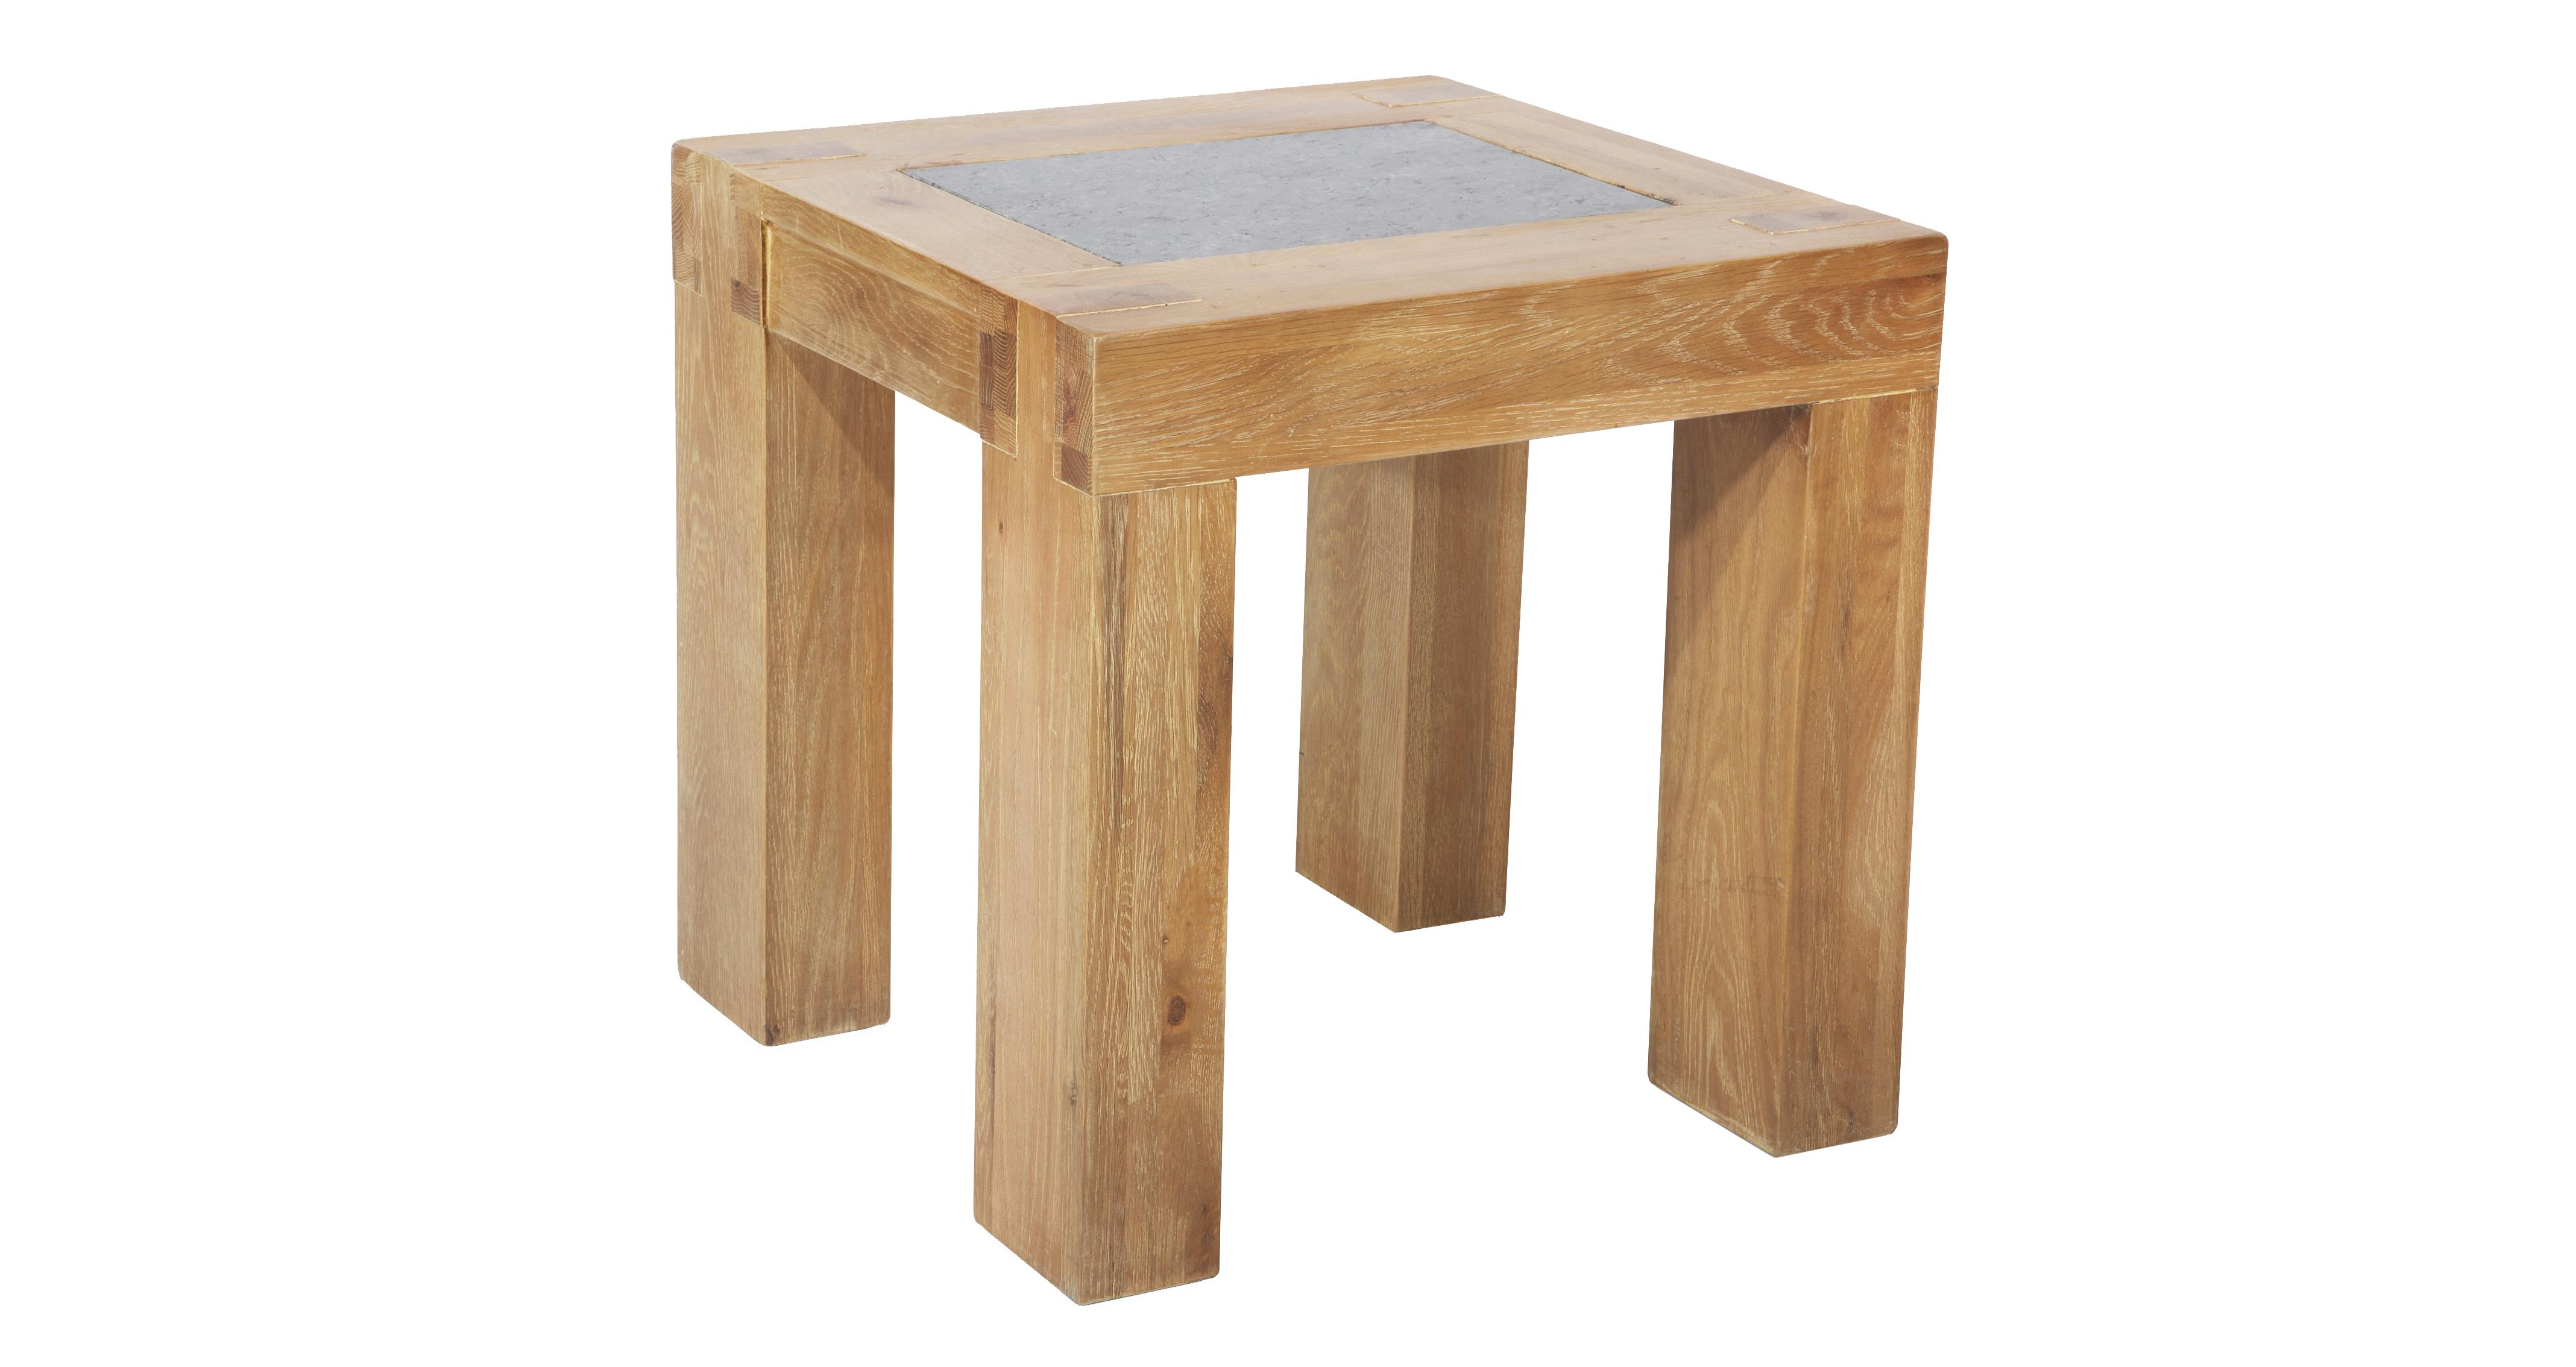 Oklahoma lamp table dfs for Lamp table dfs